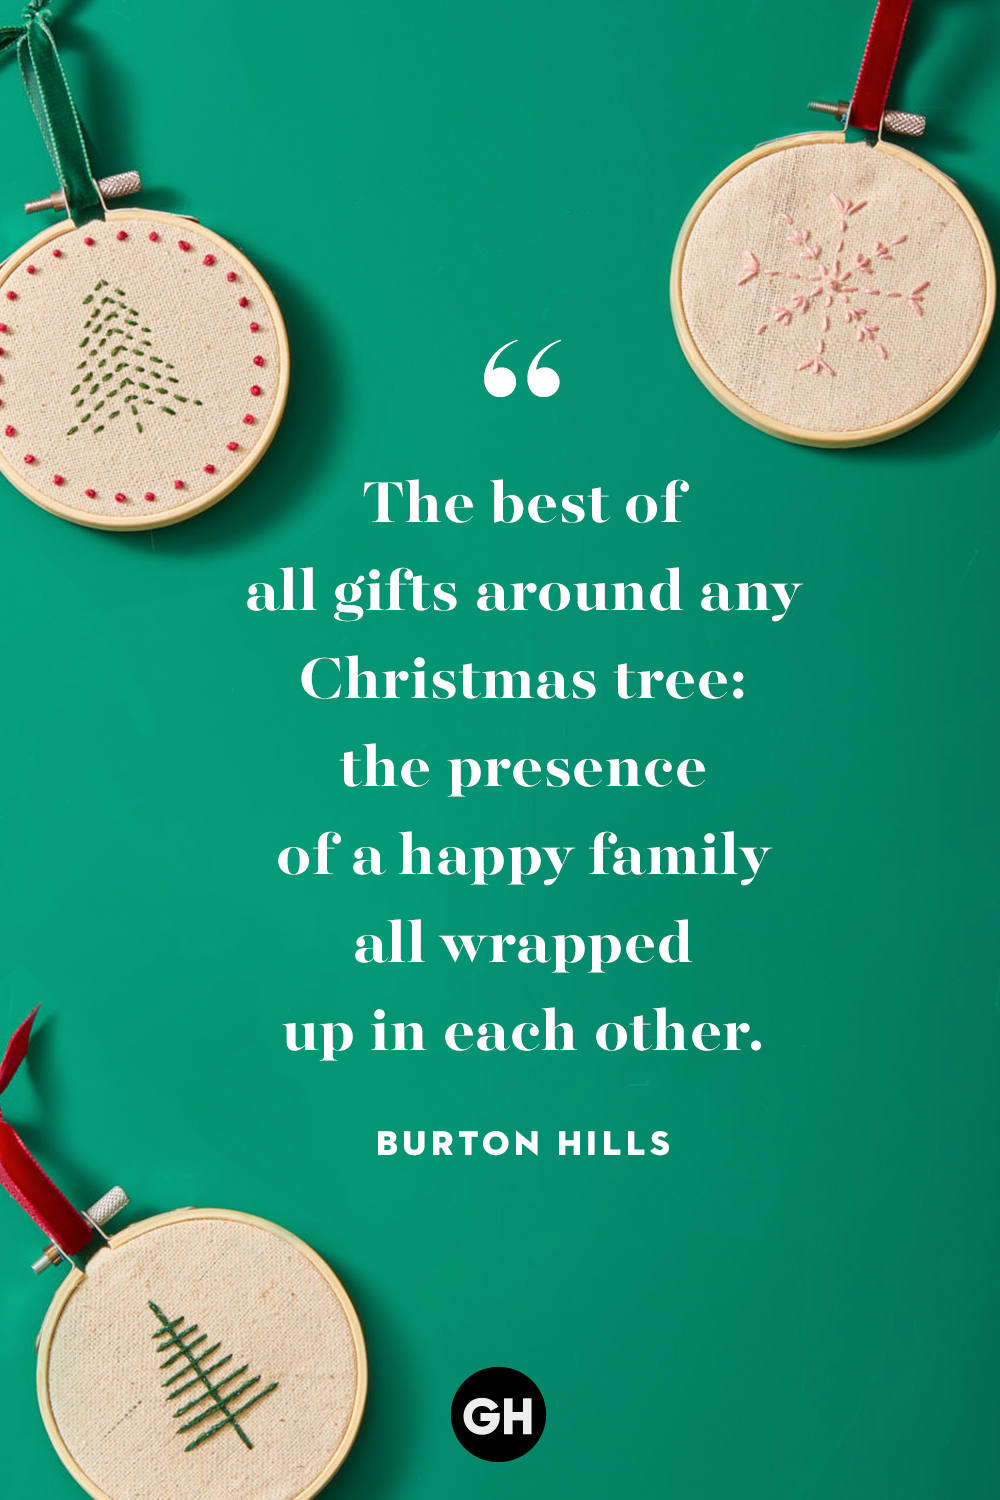 50 Best Christmas Quotes of All Time , Festive Holiday